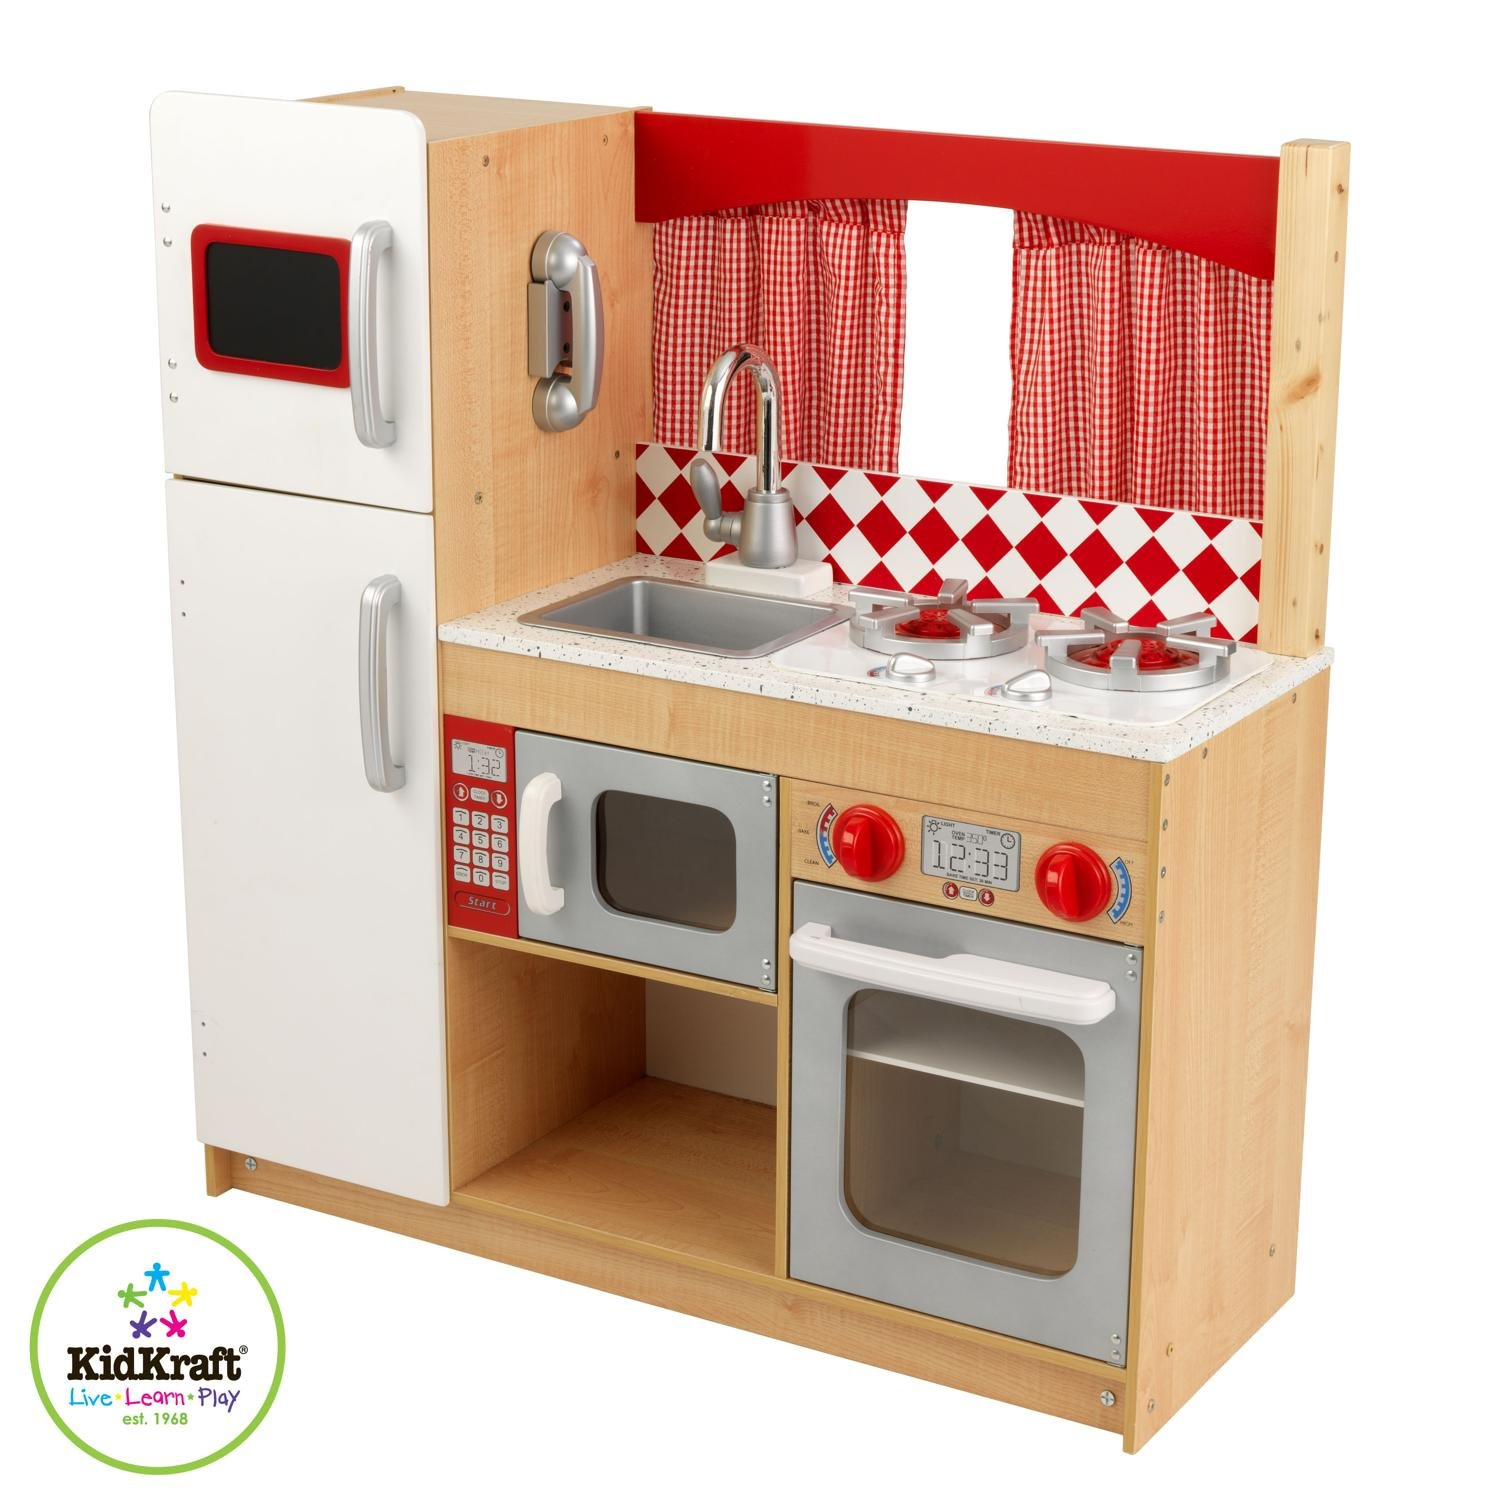 Toddler Play Kitchen On Sale